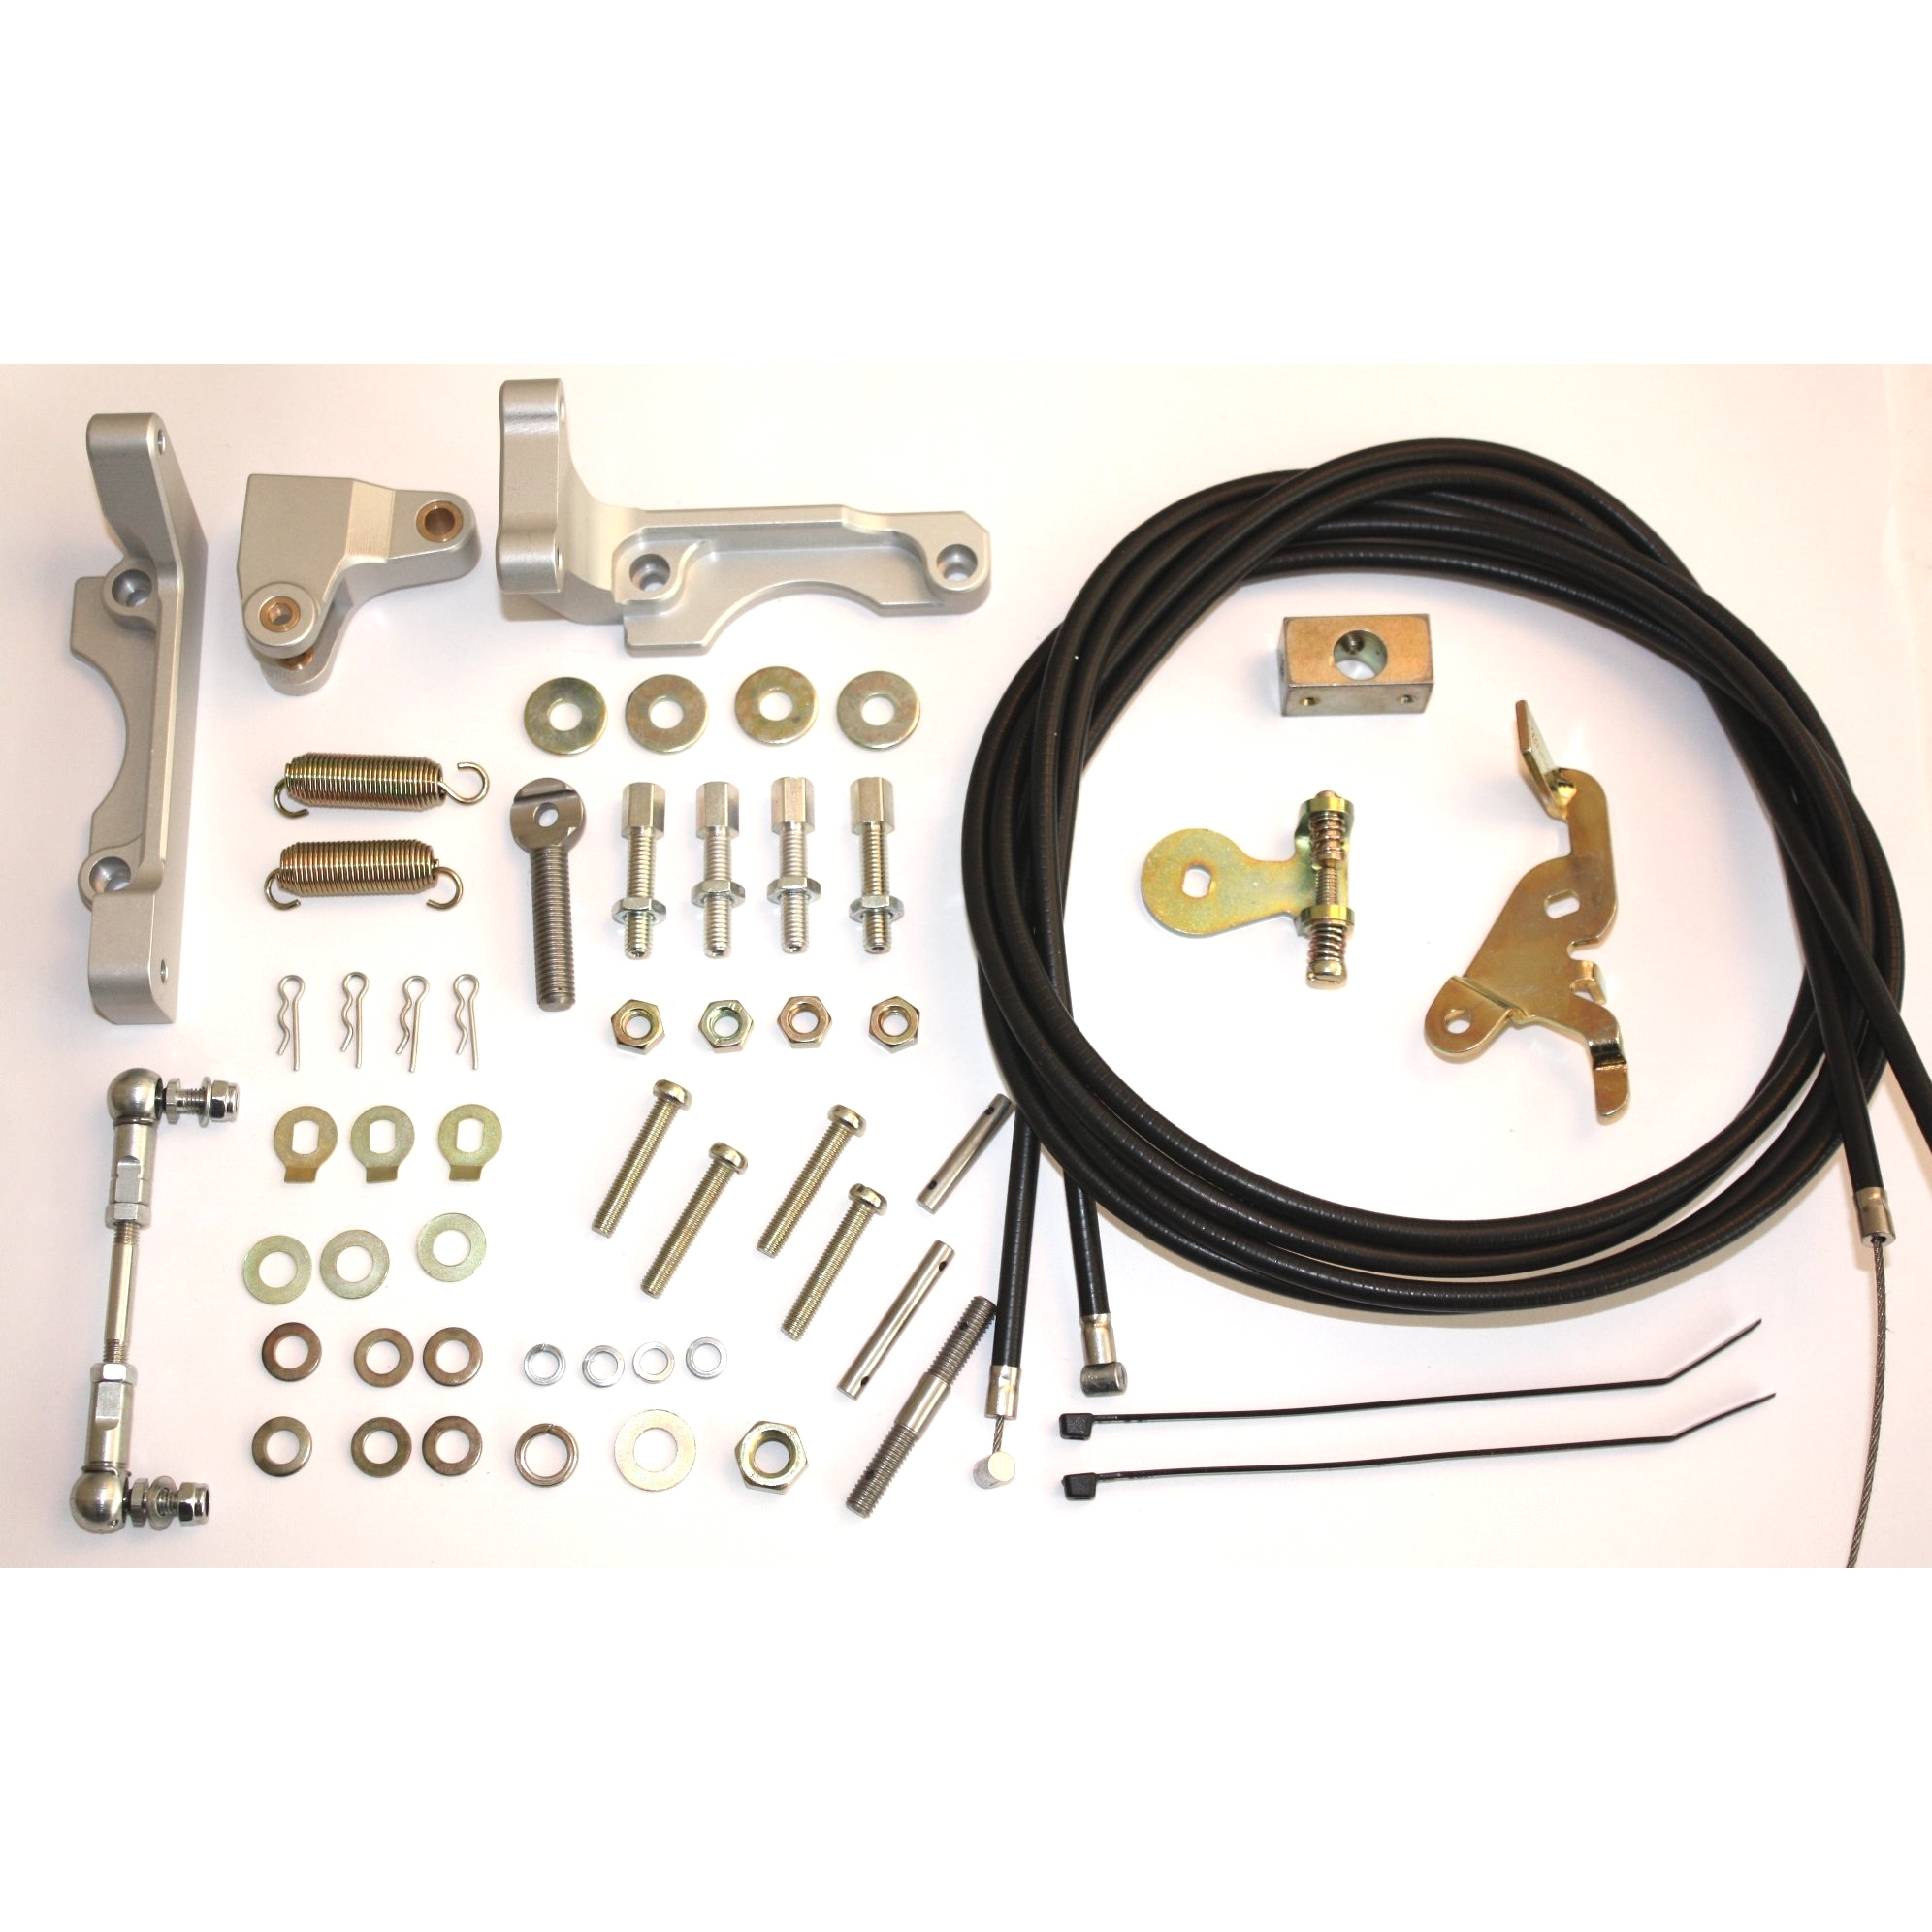 WEBER 38-55 DCOE / DCO / SP TWIN CABLE CARBURETTOR / CARB DROTTLE LINKAGE KIT